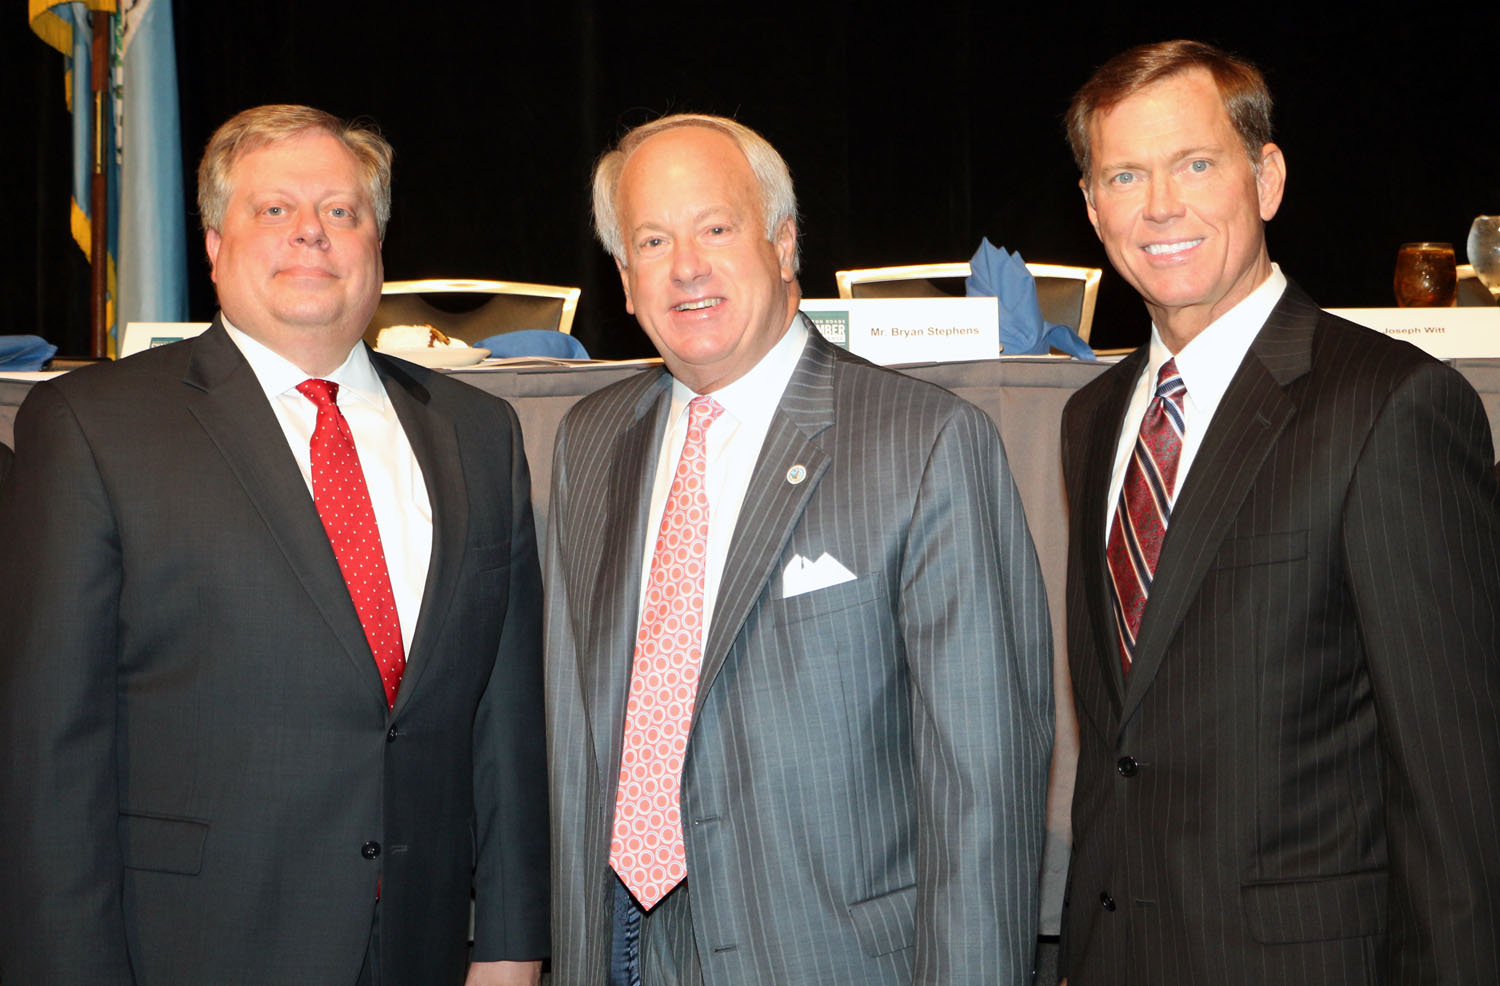 Glen Robertson, Chair, Hampton Roads Chamber of Commerce Virginia Beach Division; Mayor William D. Sessoms and Bryan K. Stephens, President & CEO, Hampton Roads Chamber of Commerce